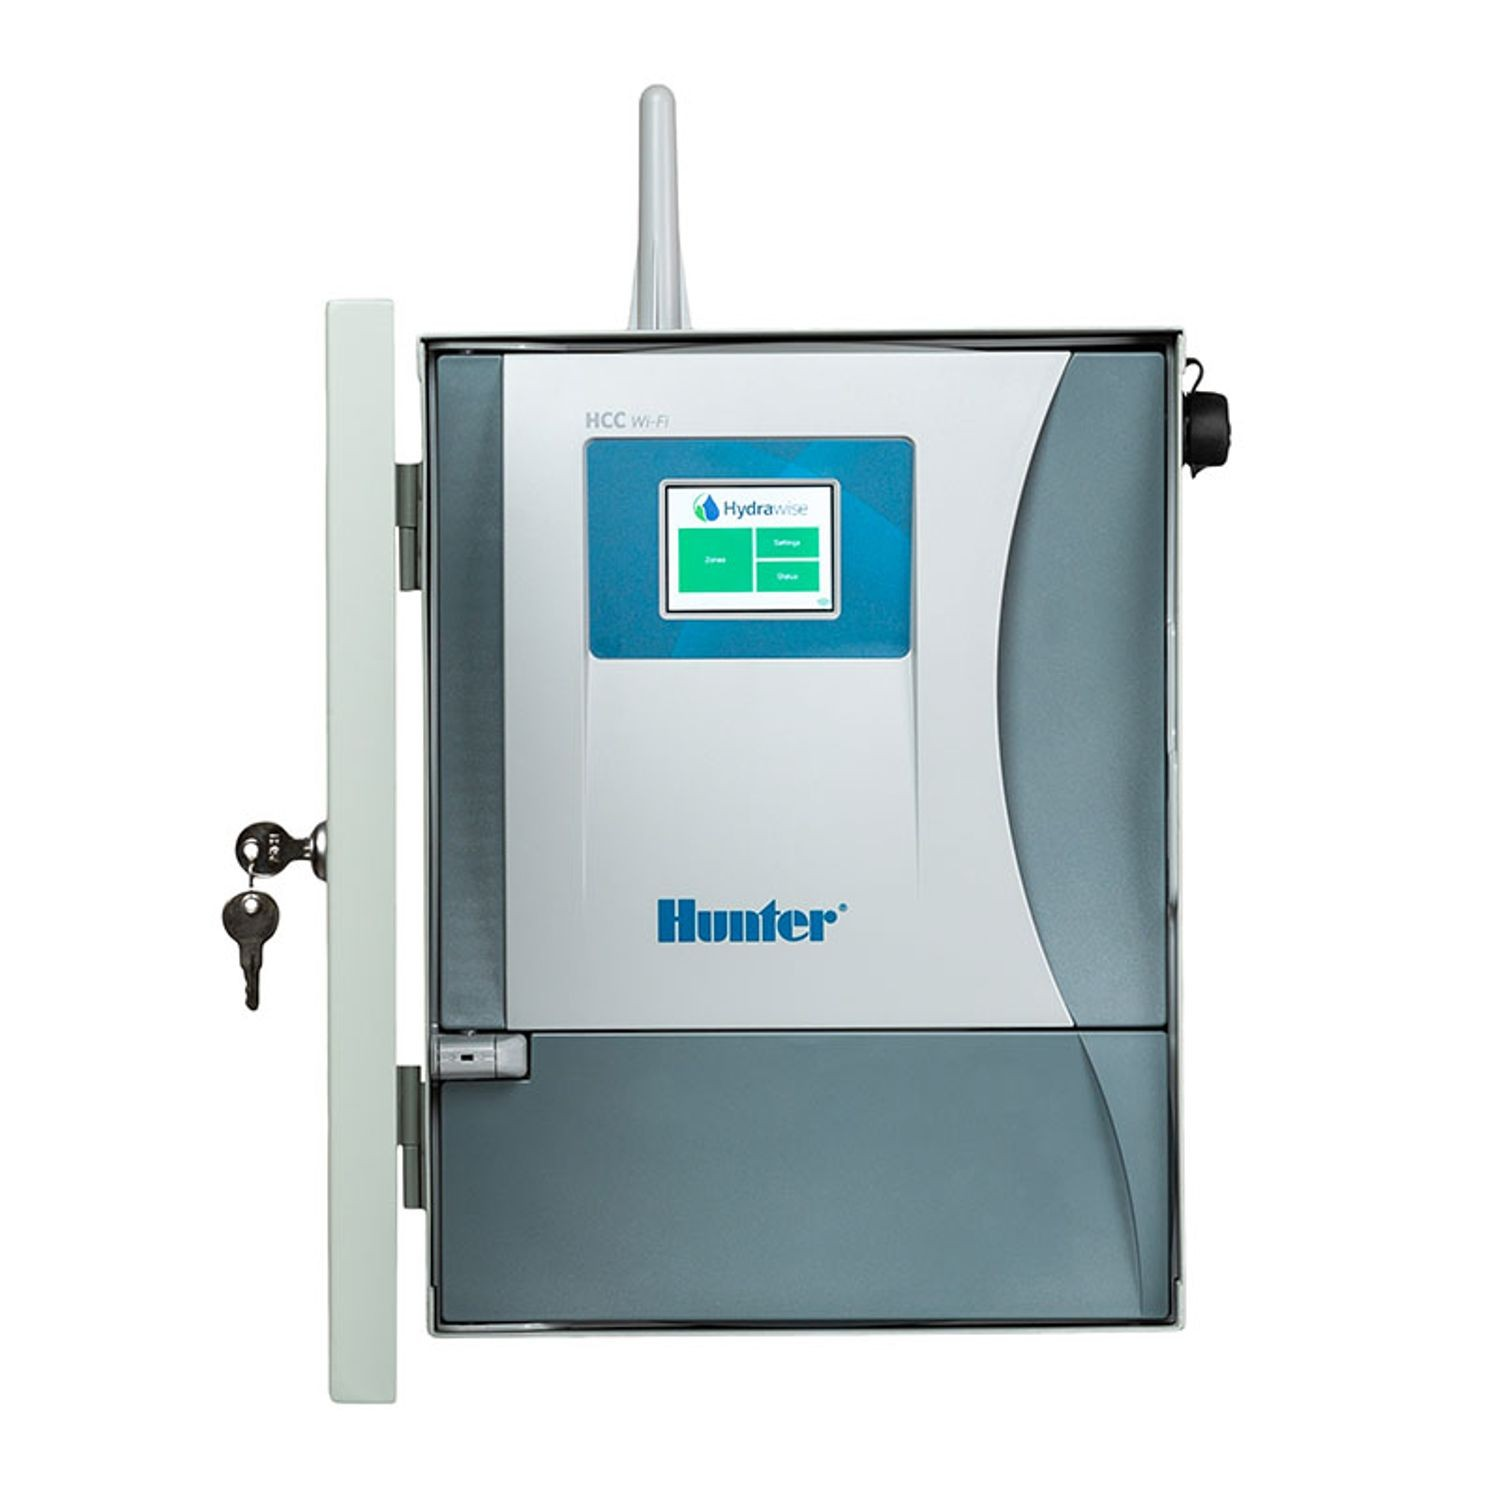 Hunter - 8 Station HCC Controller with Metal Wall Mount | Reinders